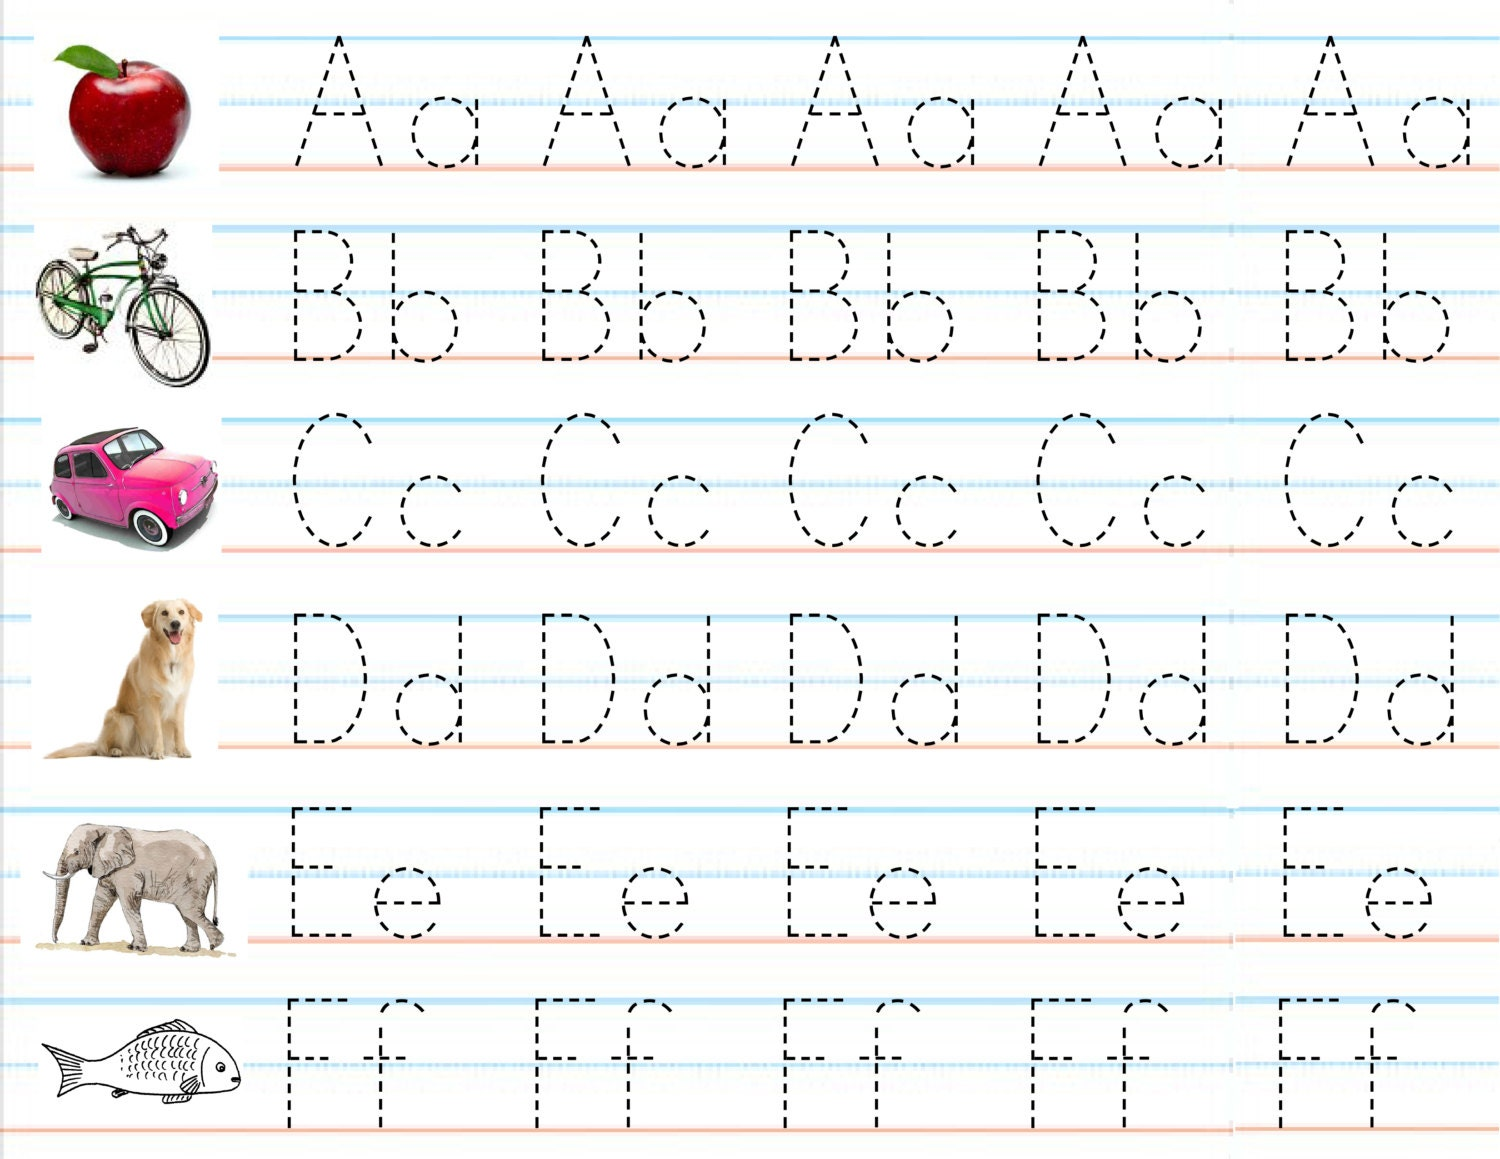 Worksheets Abc Practice Worksheets worksheet preschool writing practice wosenly free abc versaldobip a b c worksheets davezan